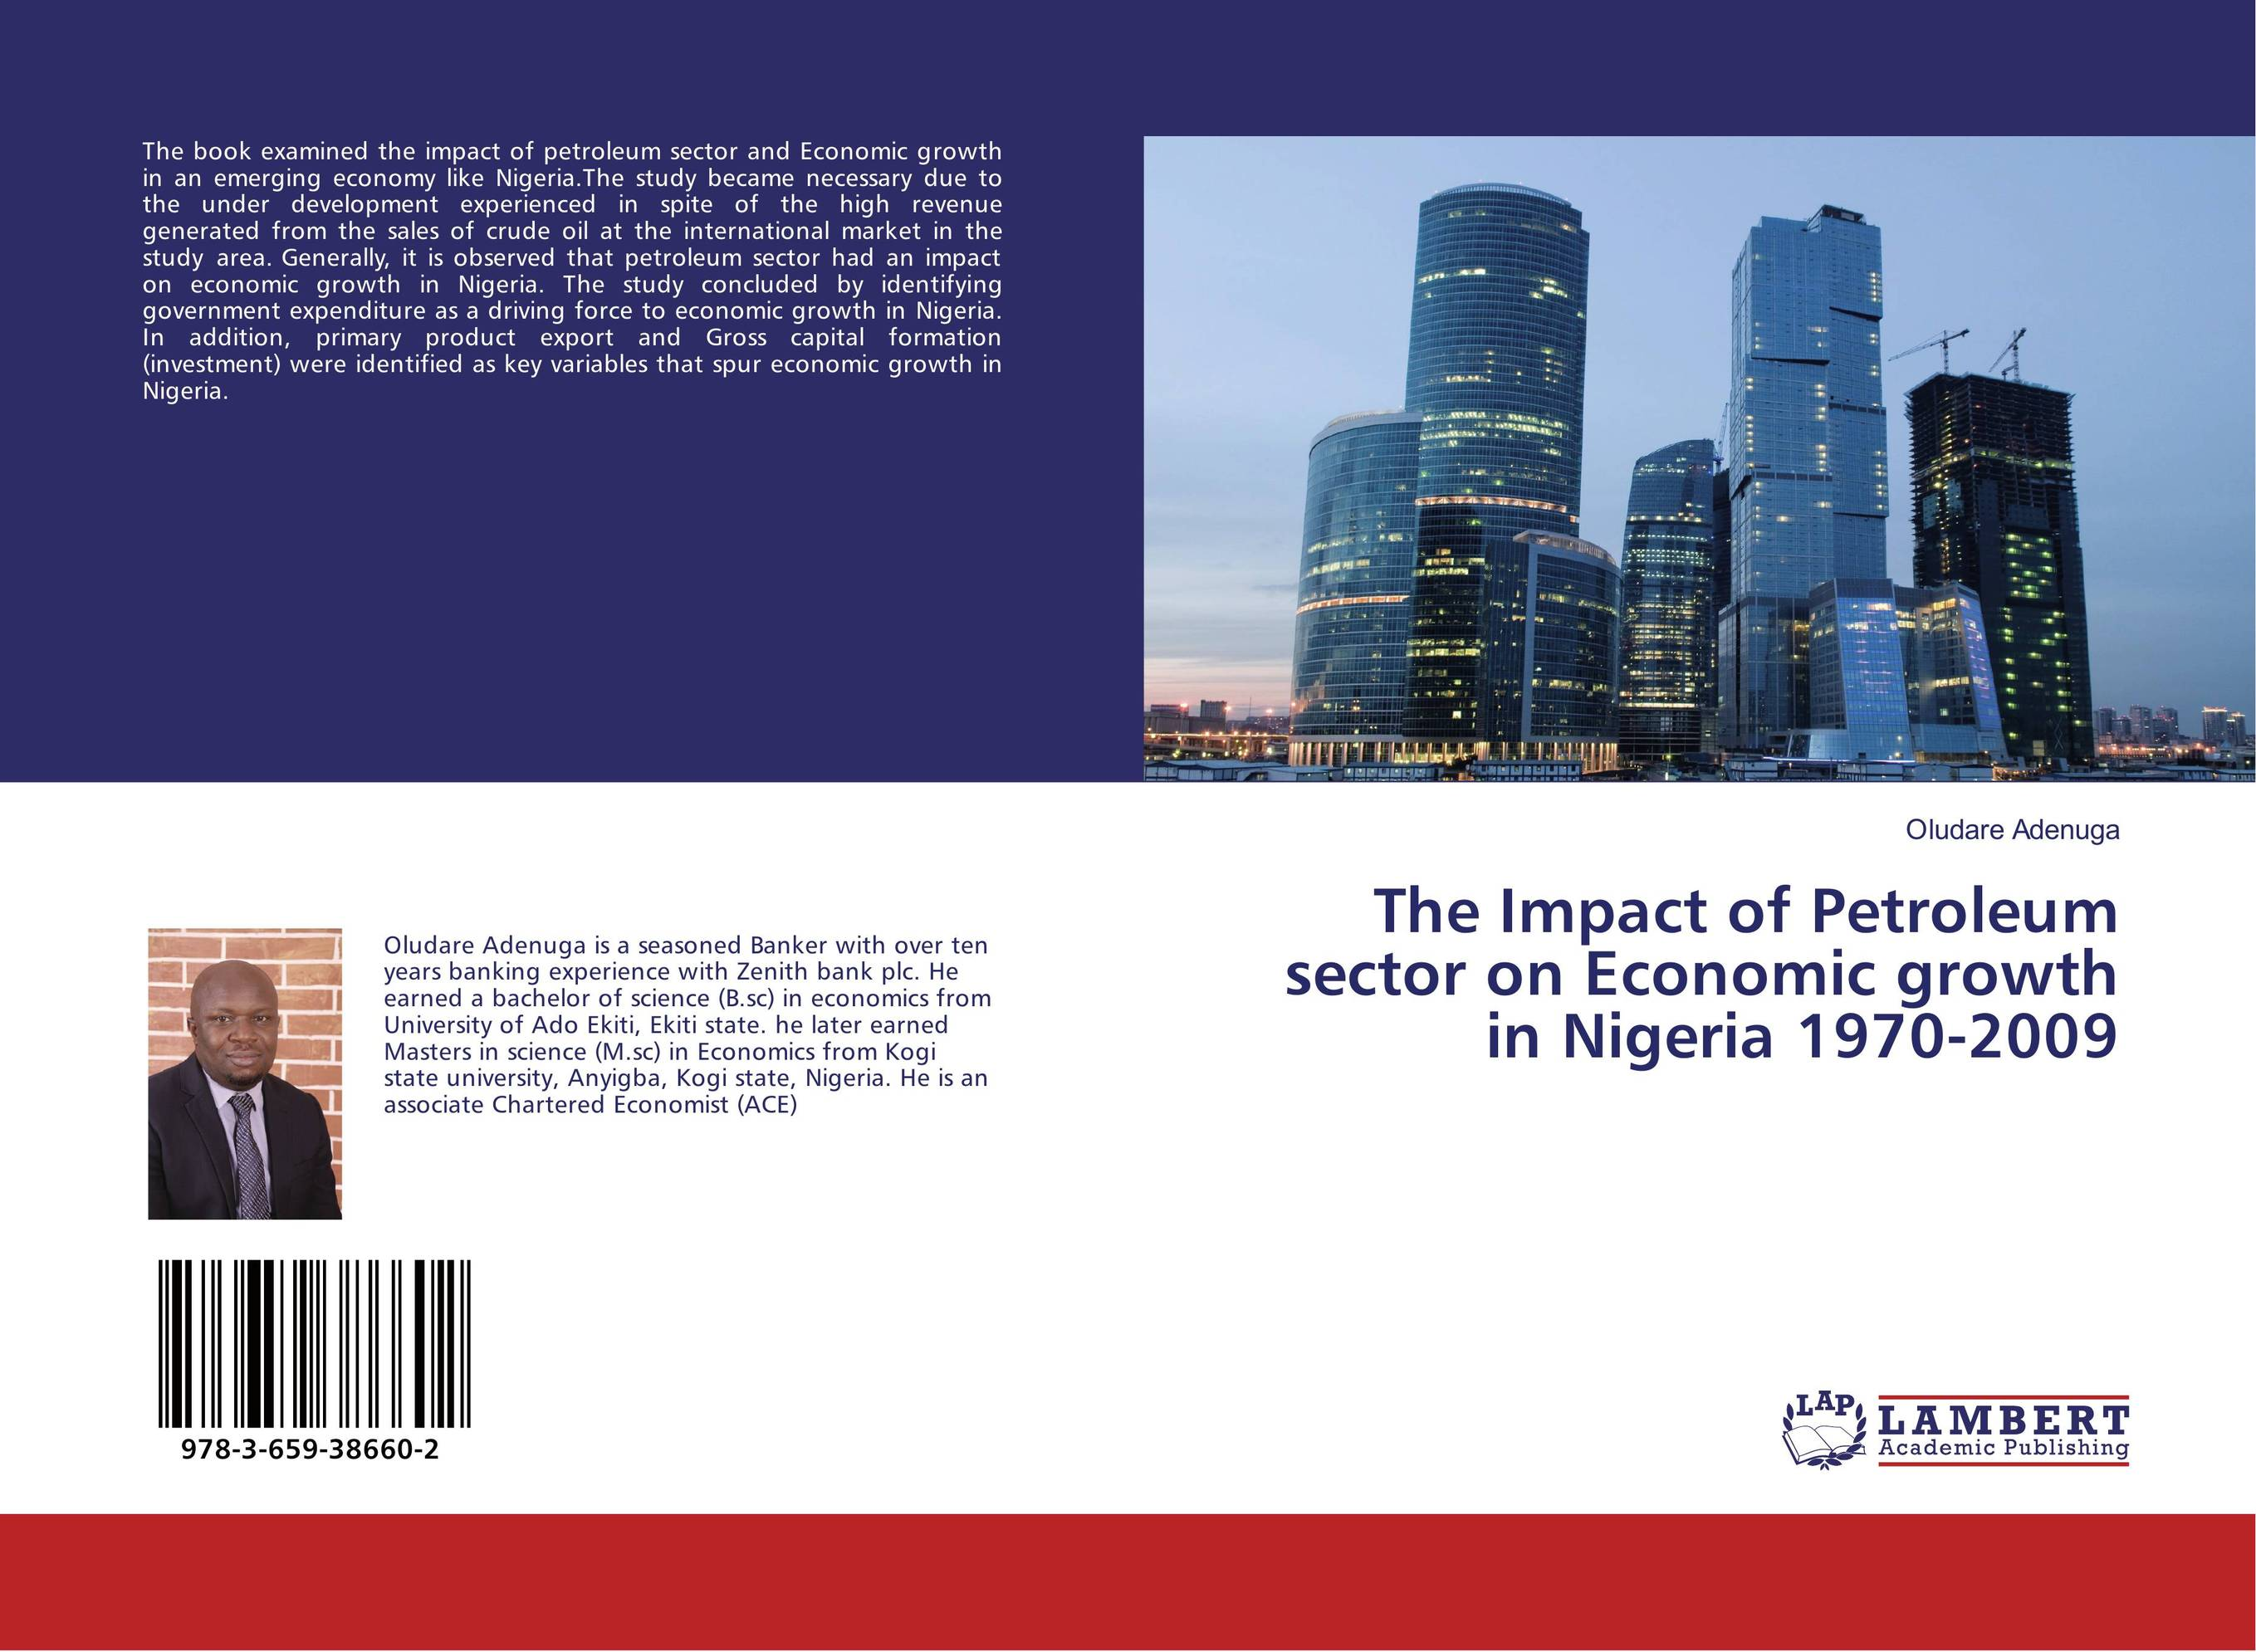 The Impact of Petroleum sector on Economic growth in Nigeria 1970-2009 impact of stock market performance indices on economic growth